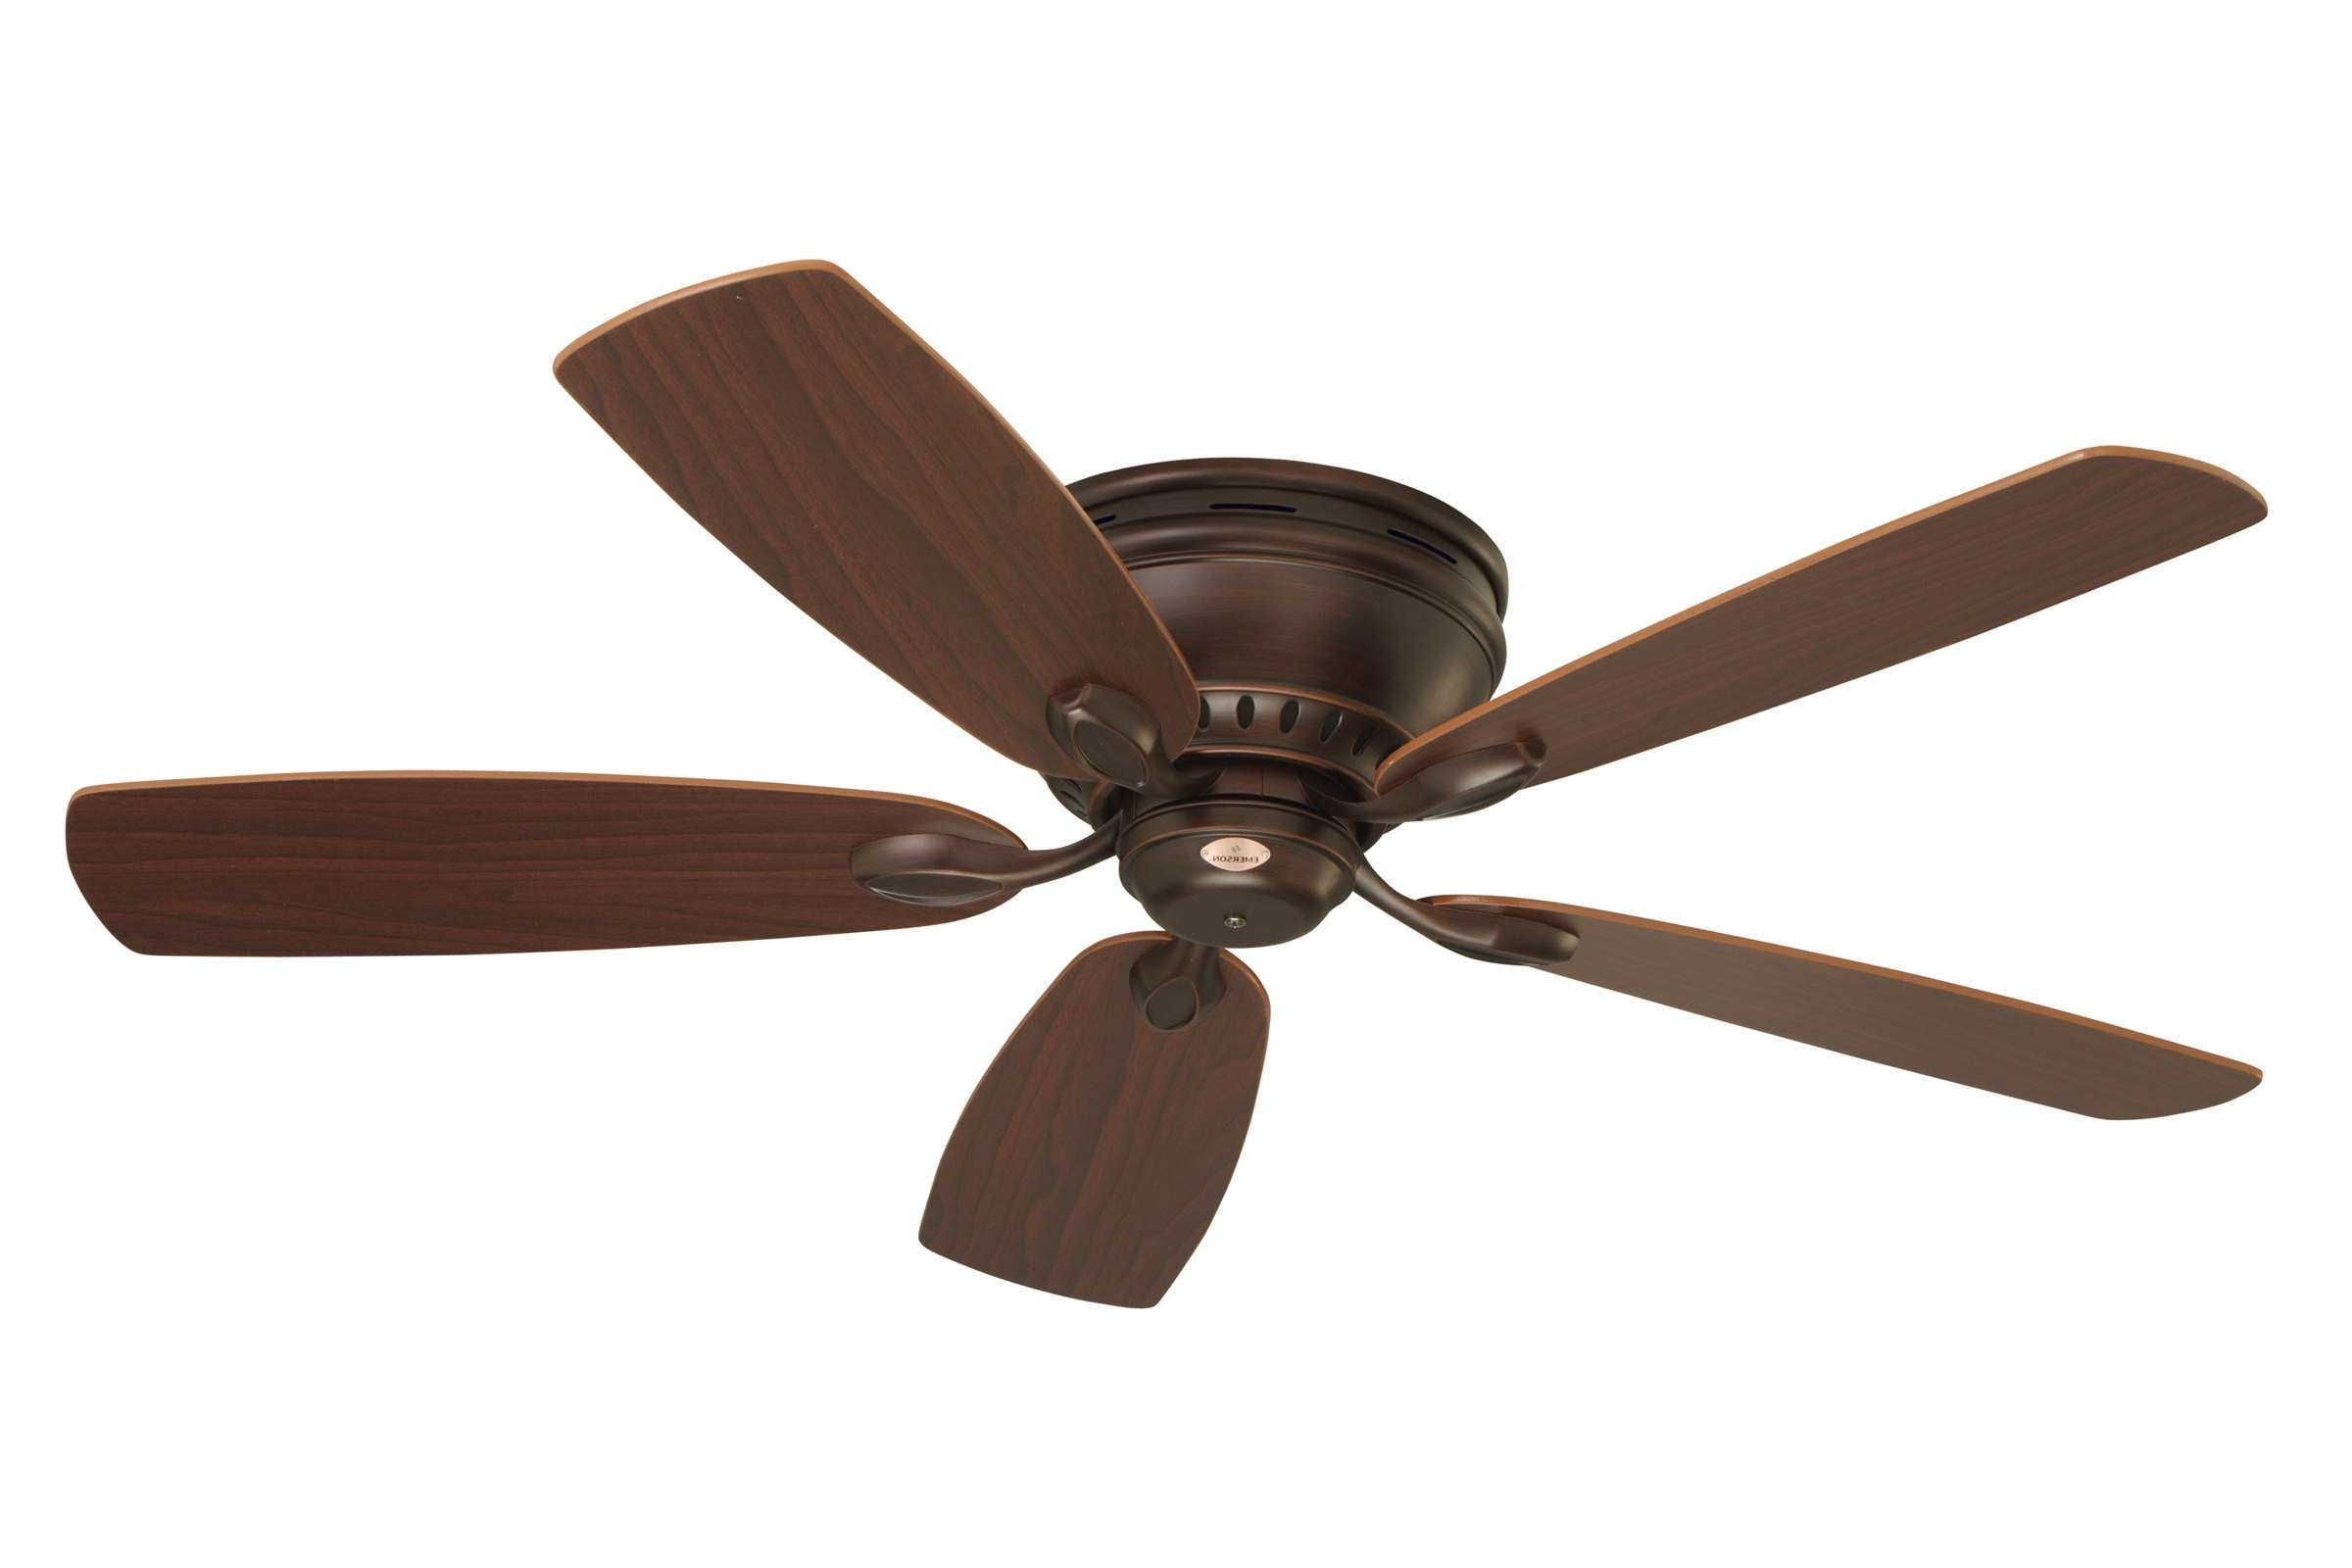 Ceiling Lights : Minimalis Outdoor Ceiling Fan With Light Home Depot Inside Well Known Brown Outdoor Ceiling Fan With Light (View 13 of 20)